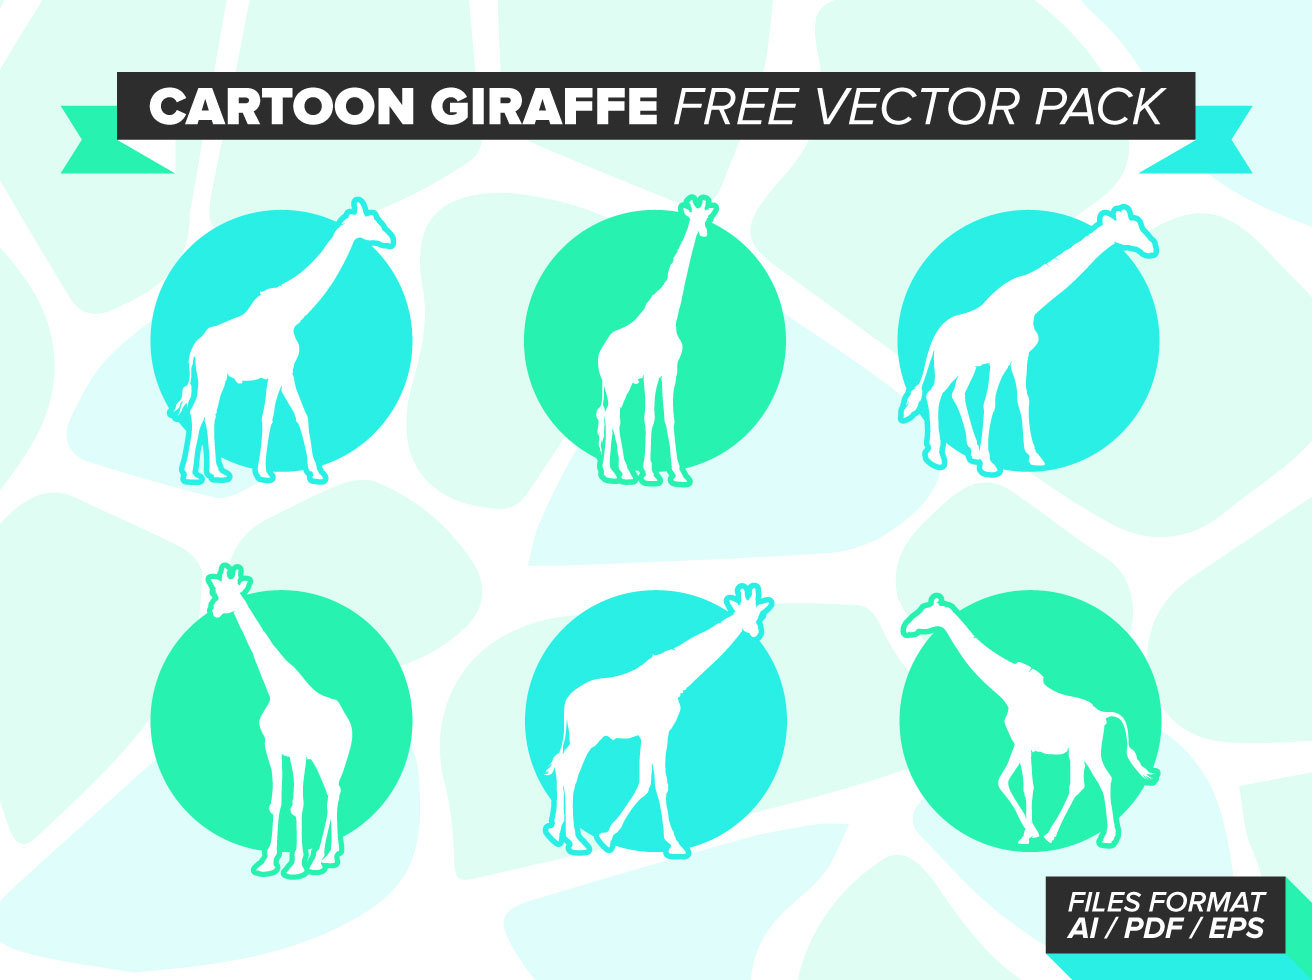 Cartoon Giraffe Free Vector Pack